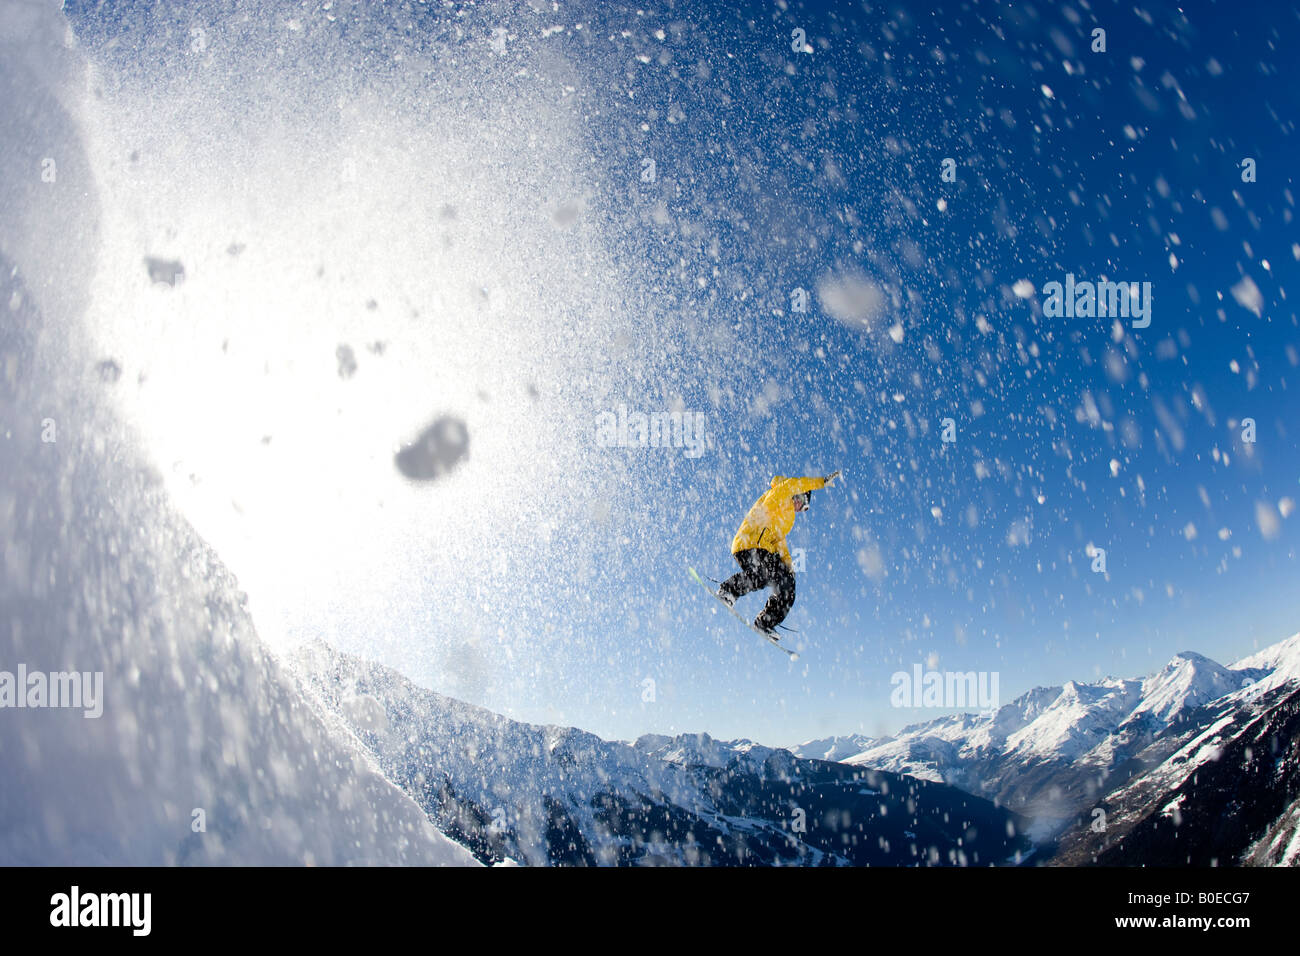 Snowboarder spins from a mountainside - Stock Image